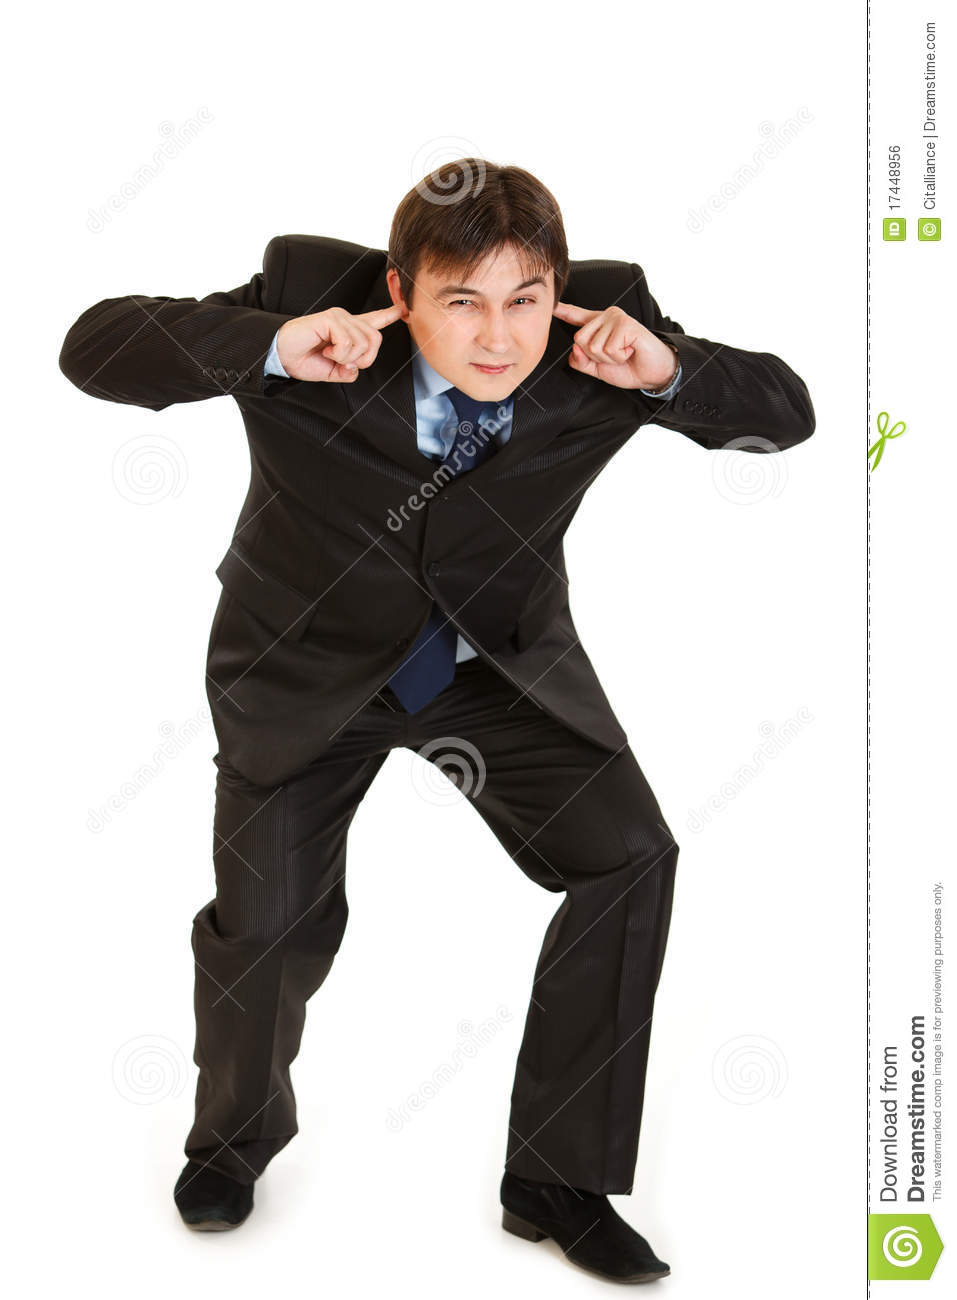 Businessman ducking in fear and closing ears